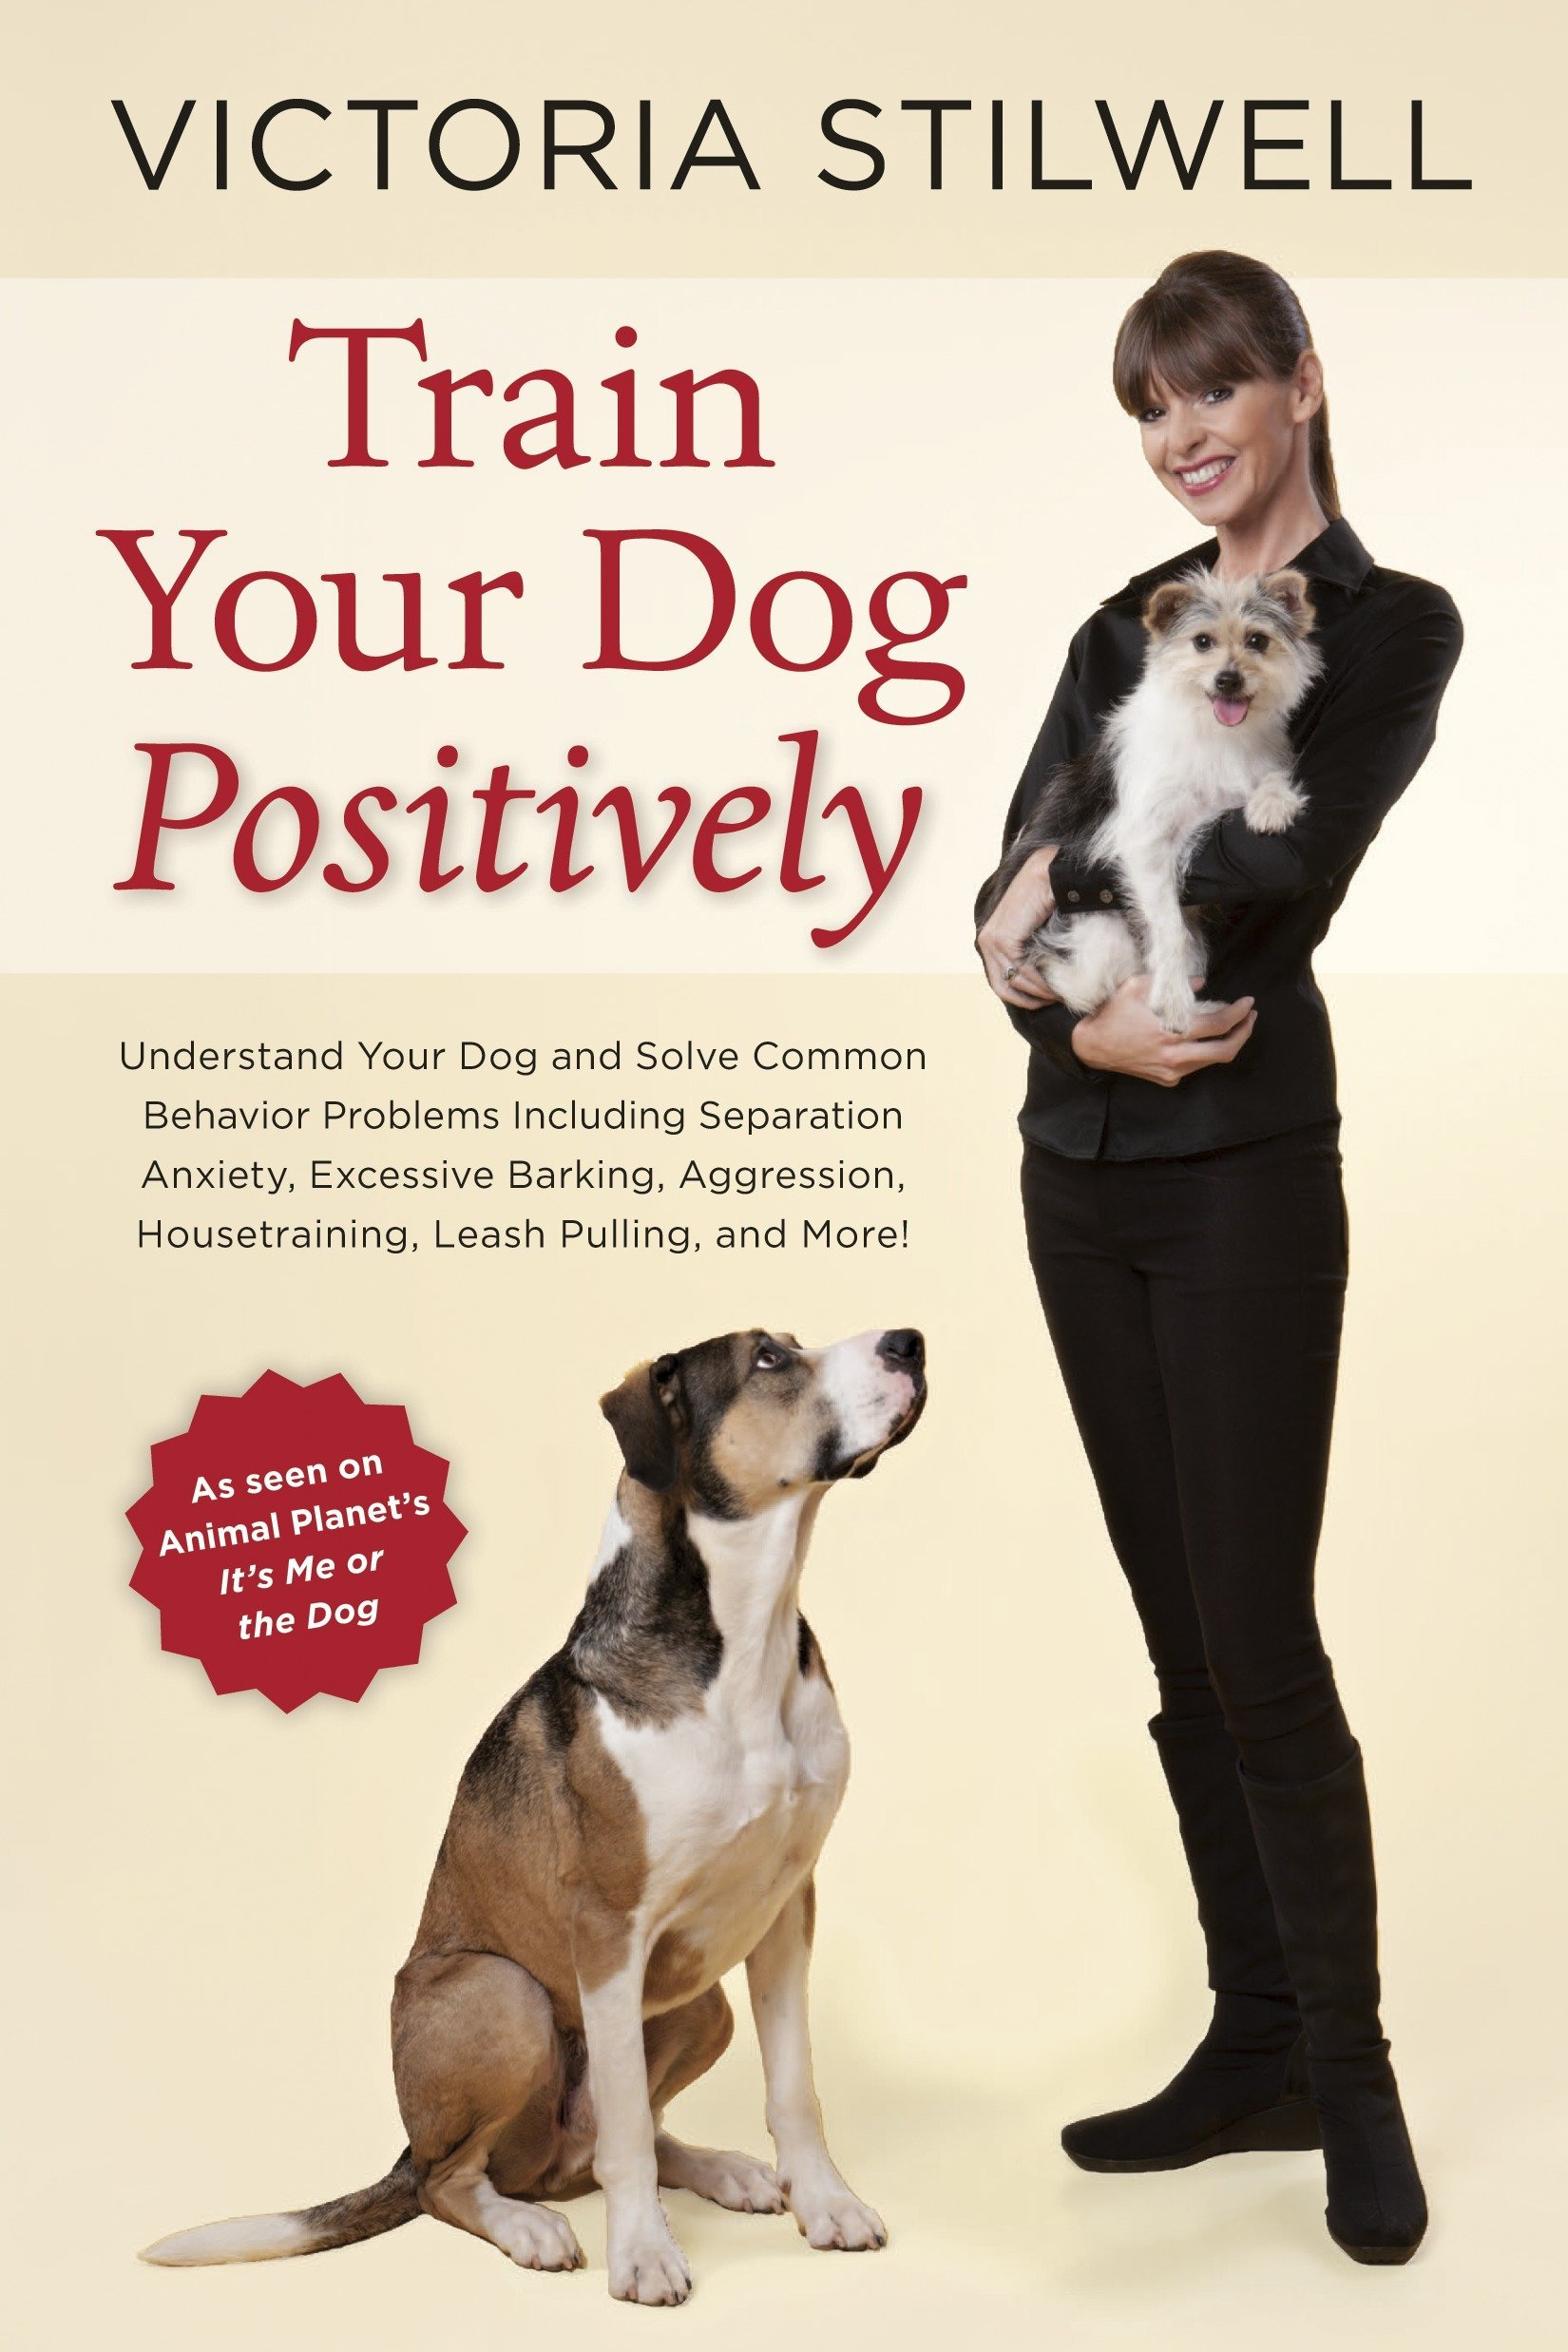 Train Your Dog Positively: Understand Your Dog and Solve Common Behavior Problems Including Separation Anxiety, Excessive Barking, Aggression, Housetraining, Leash Pulling, and More! PDF